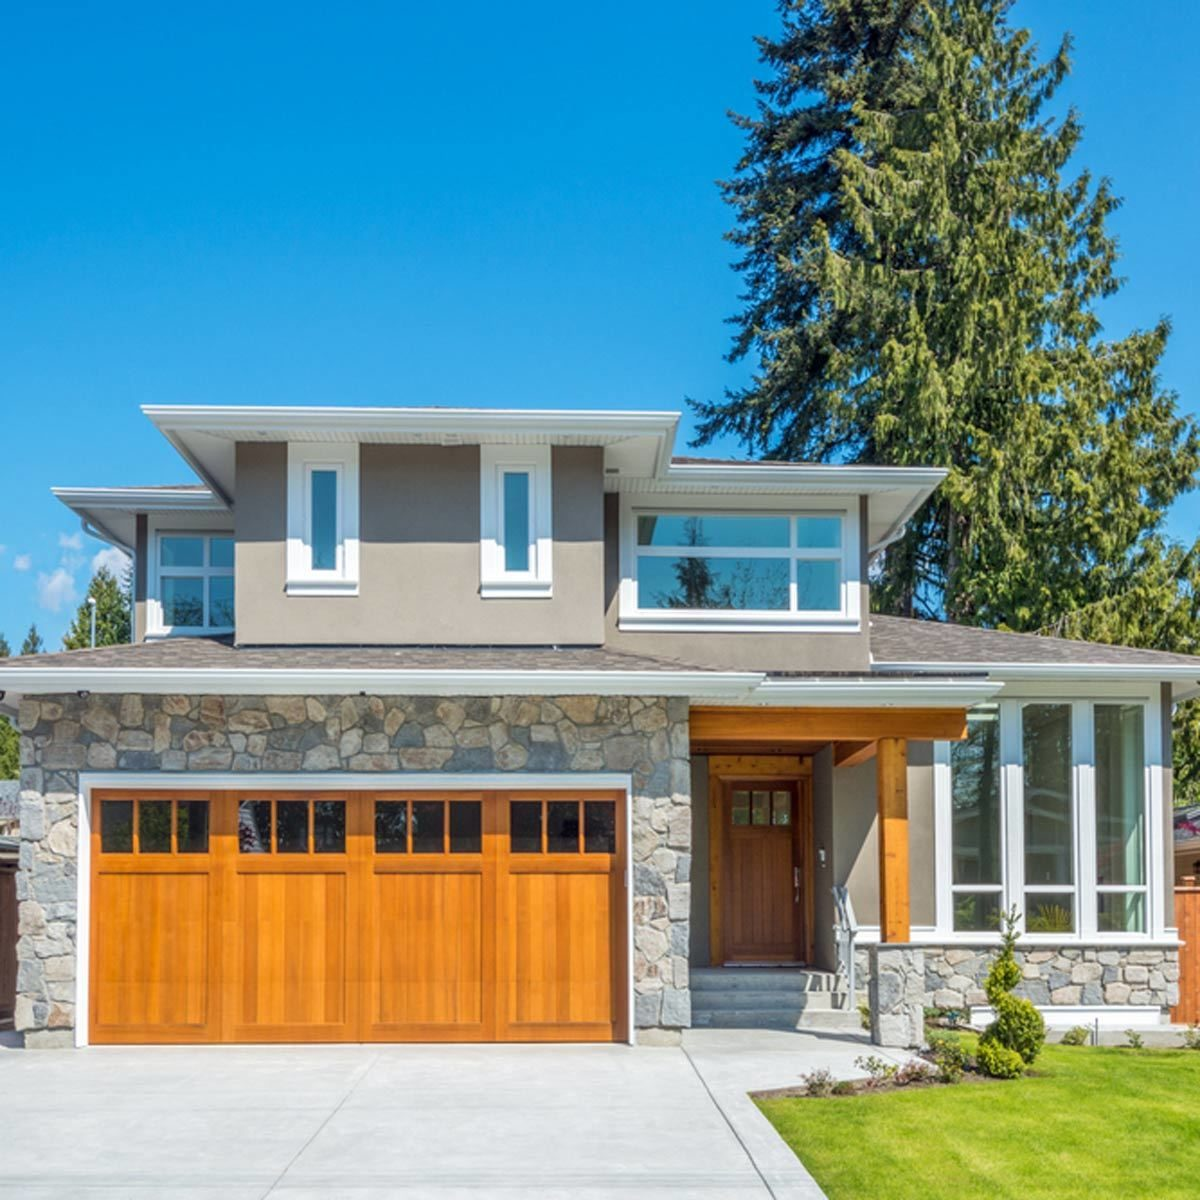 12 Remodeling Ideas That Will Pay Off | The Family Handyman on Garage Door Color Ideas  id=47965